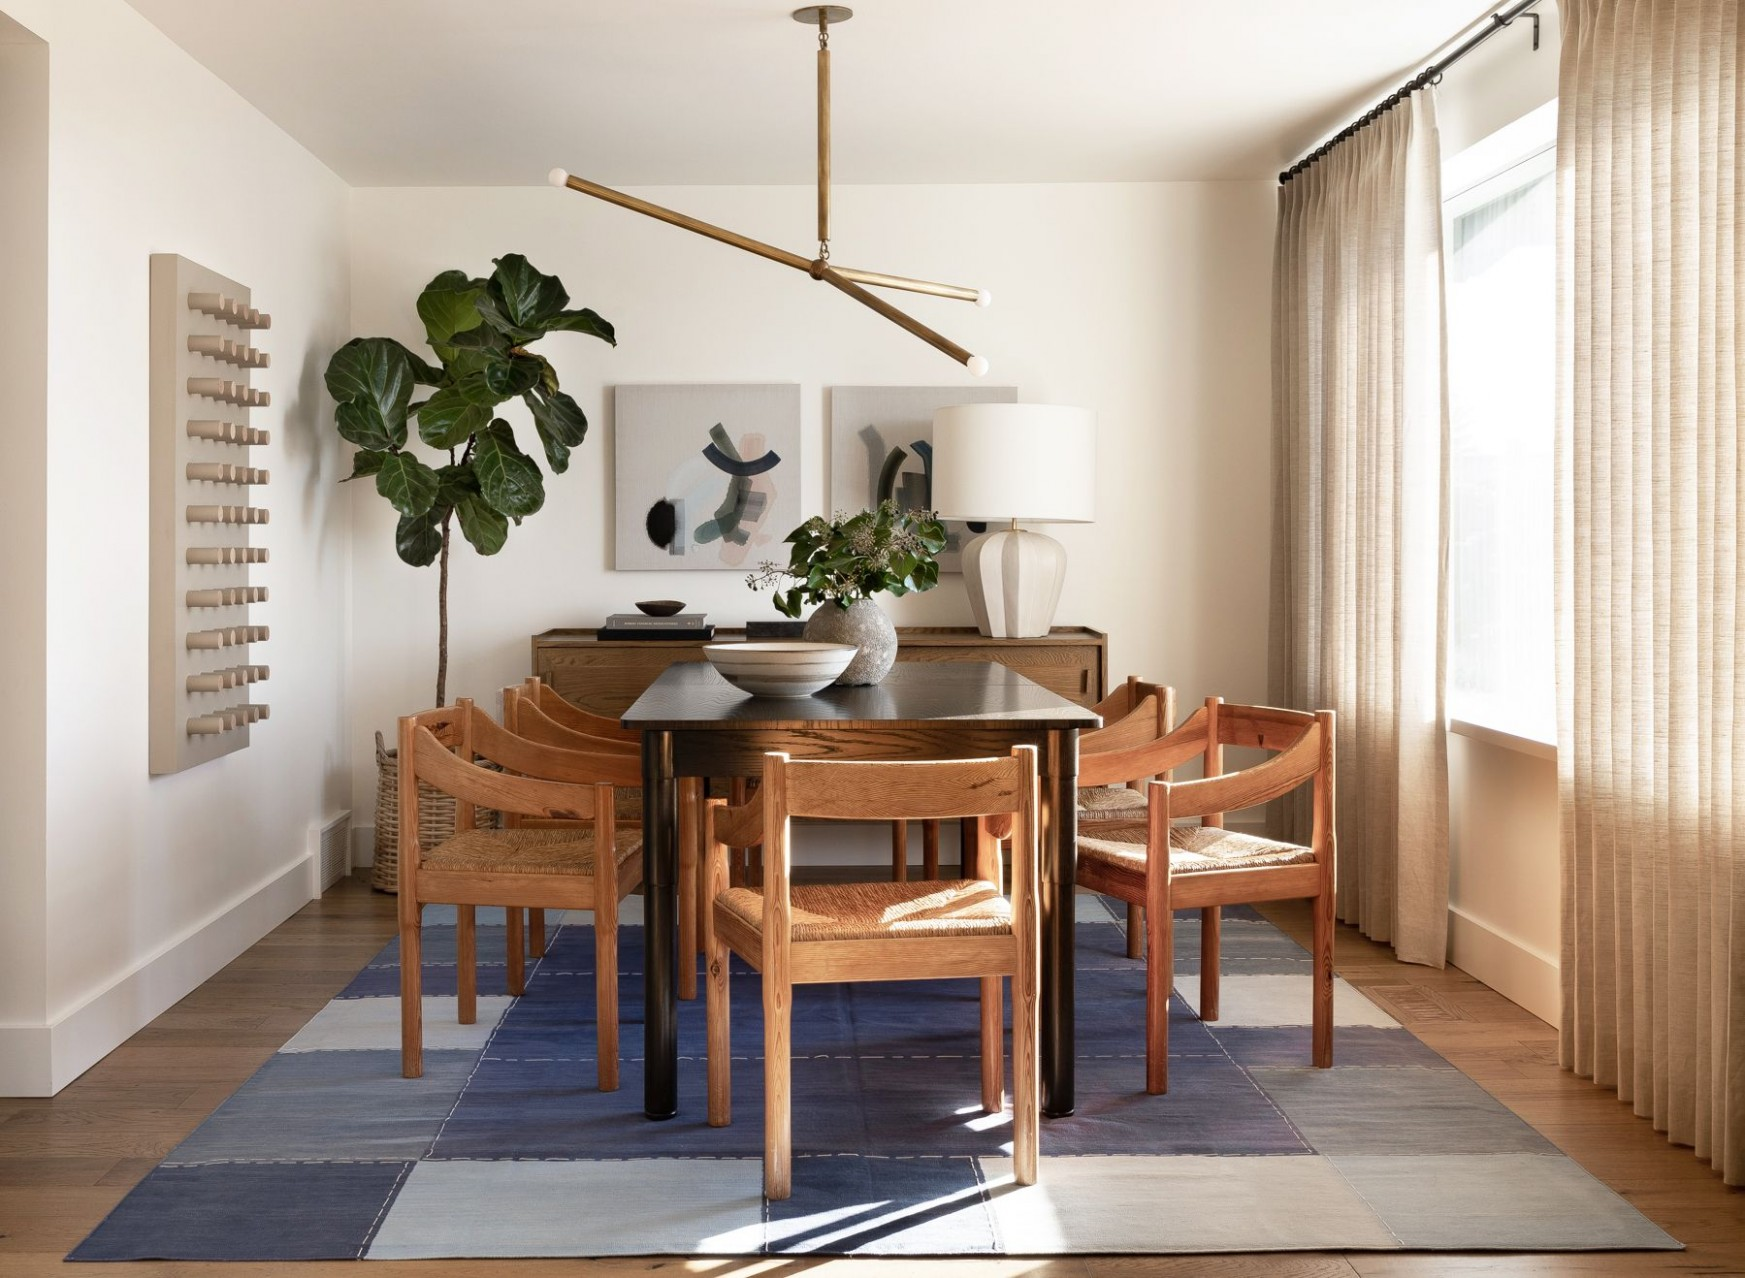 8 Best Dining Room Decorating Ideas, Furniture, Designs, and Pictures - Dining Room Ideas Gallery